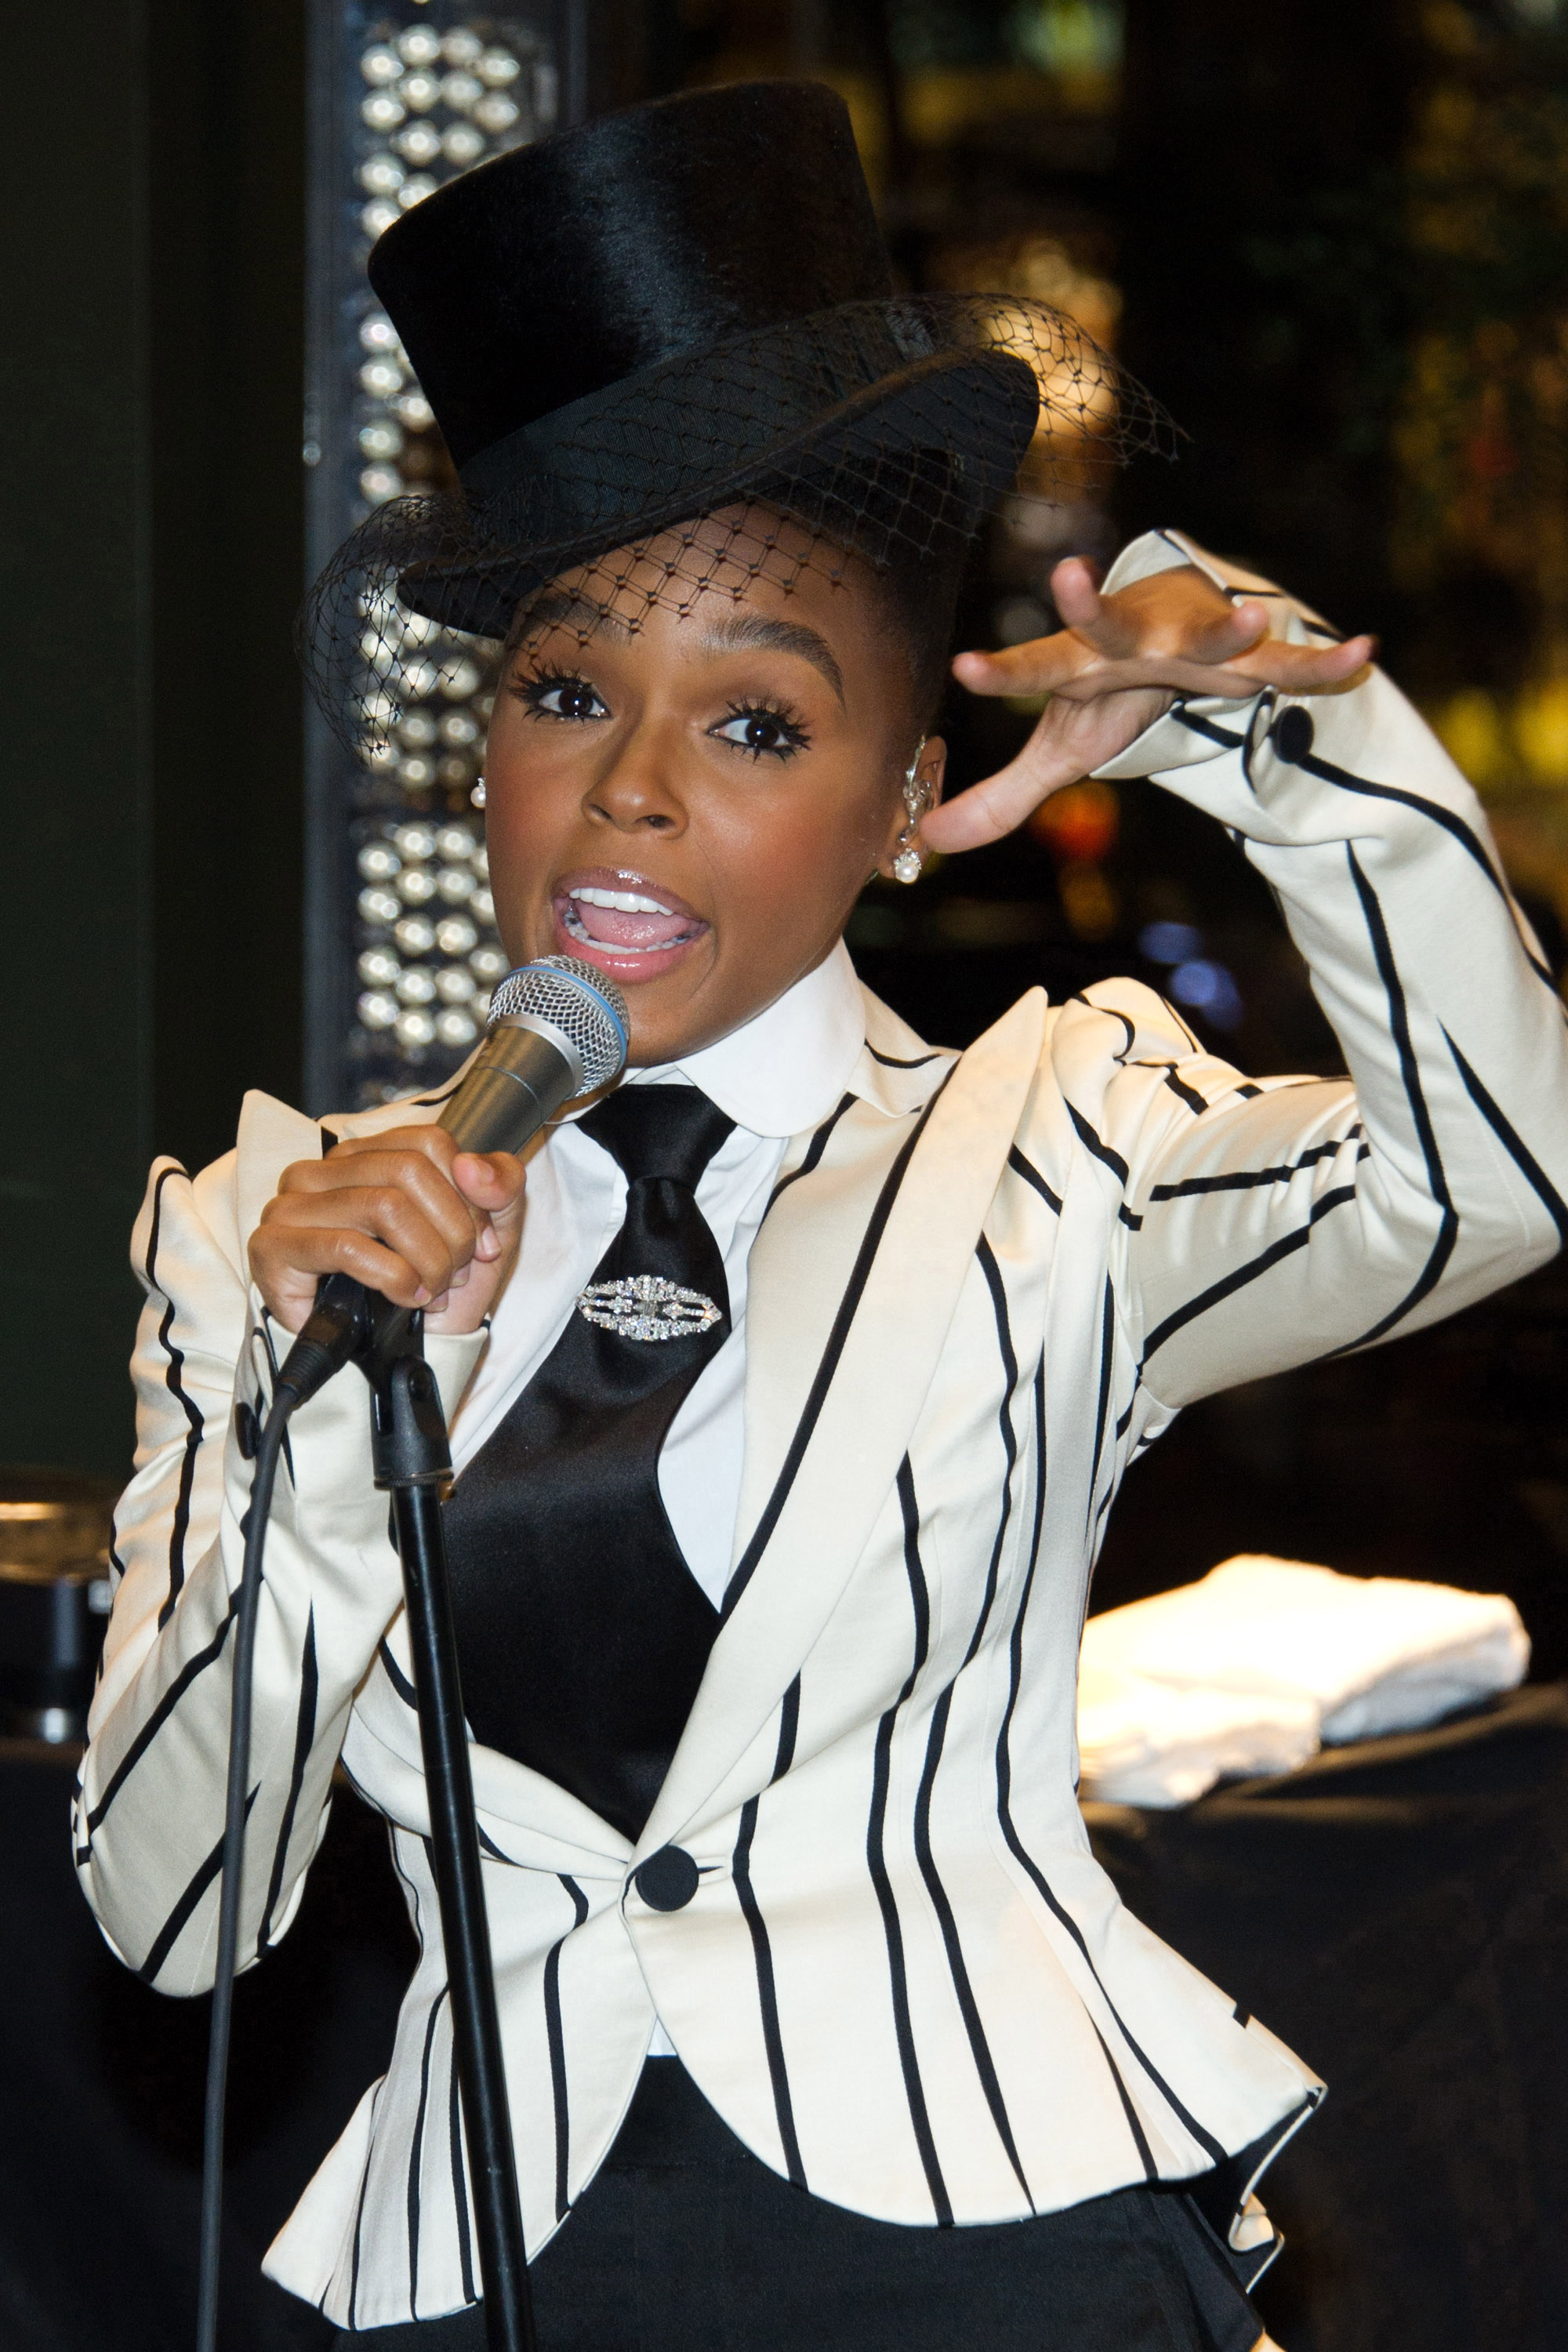 Janelle Monae performs at the Ralph Lauren Soho store for Fashion's Night Out in New York, New York on Friday.